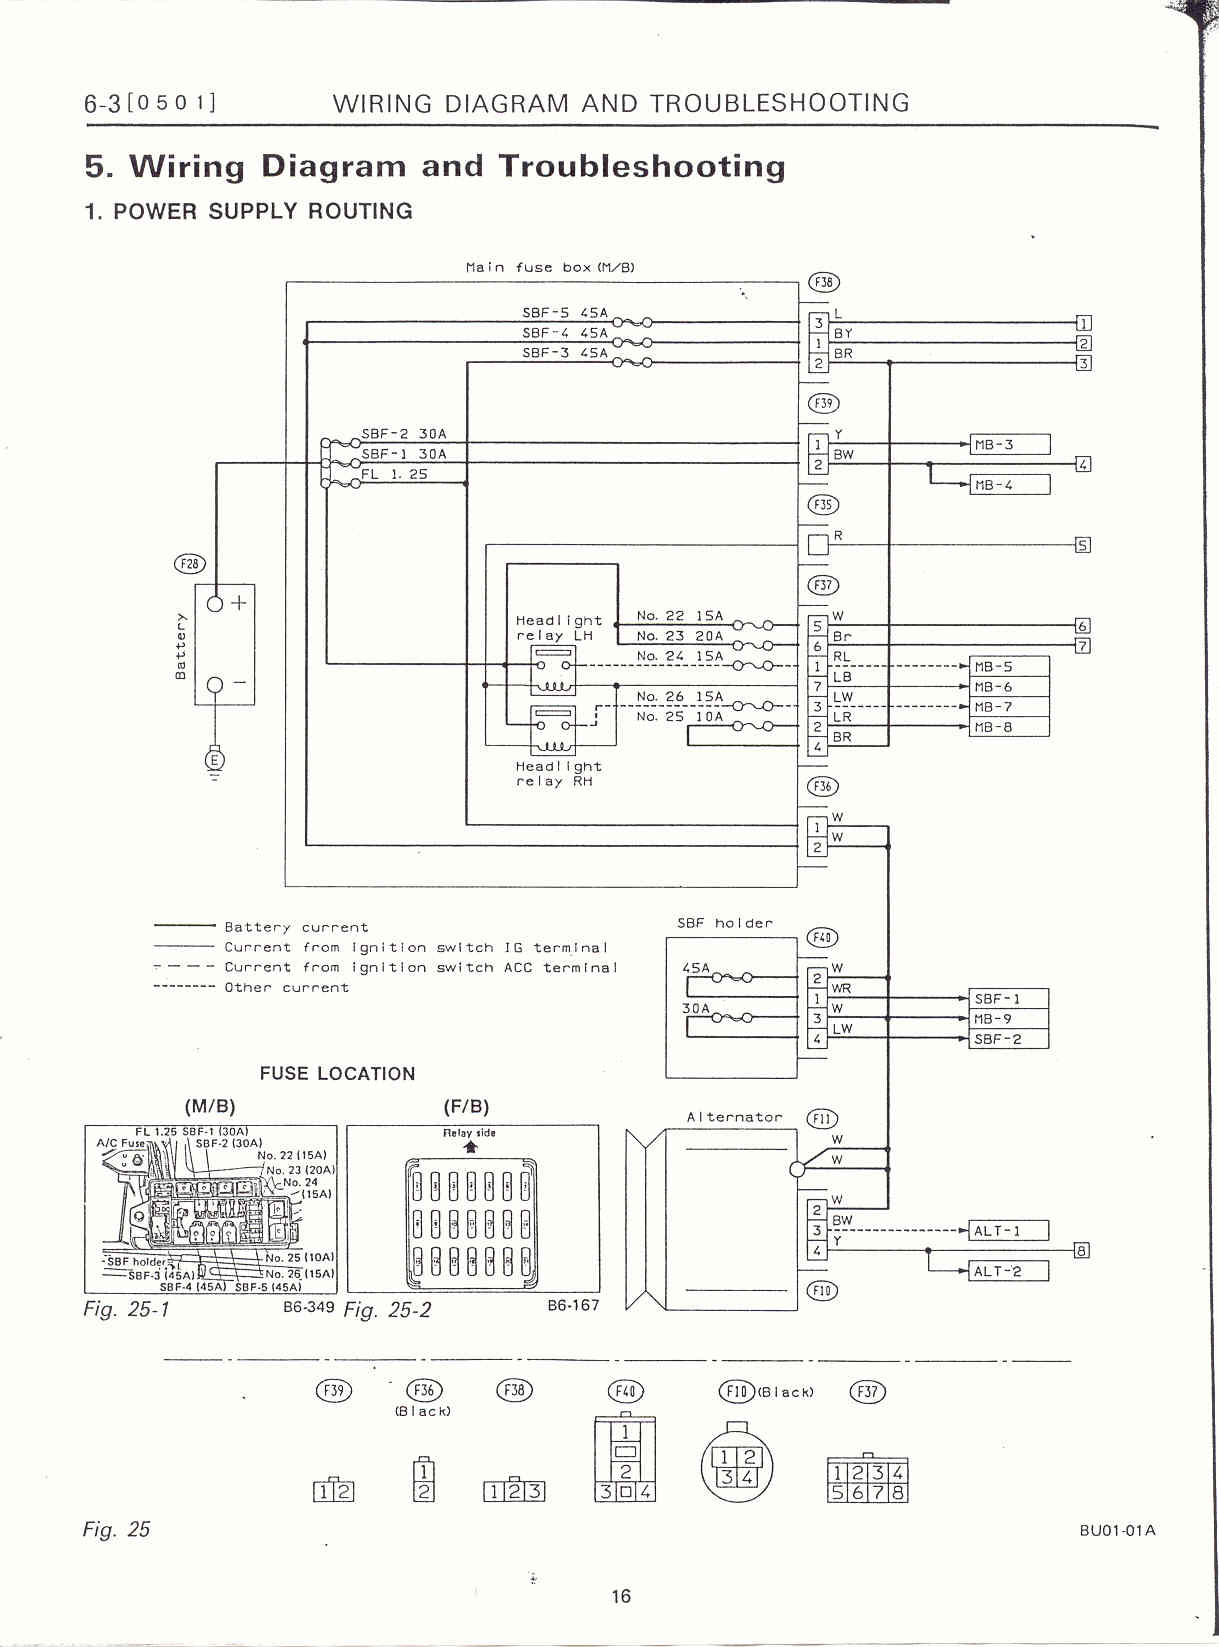 2008 Subaru Tribeca Wiring Diagram Manual Guide 07 Tundra Radio Wire 2006 Fuse Library Rh 20 Codingcommunity De 2010 Interior 2007